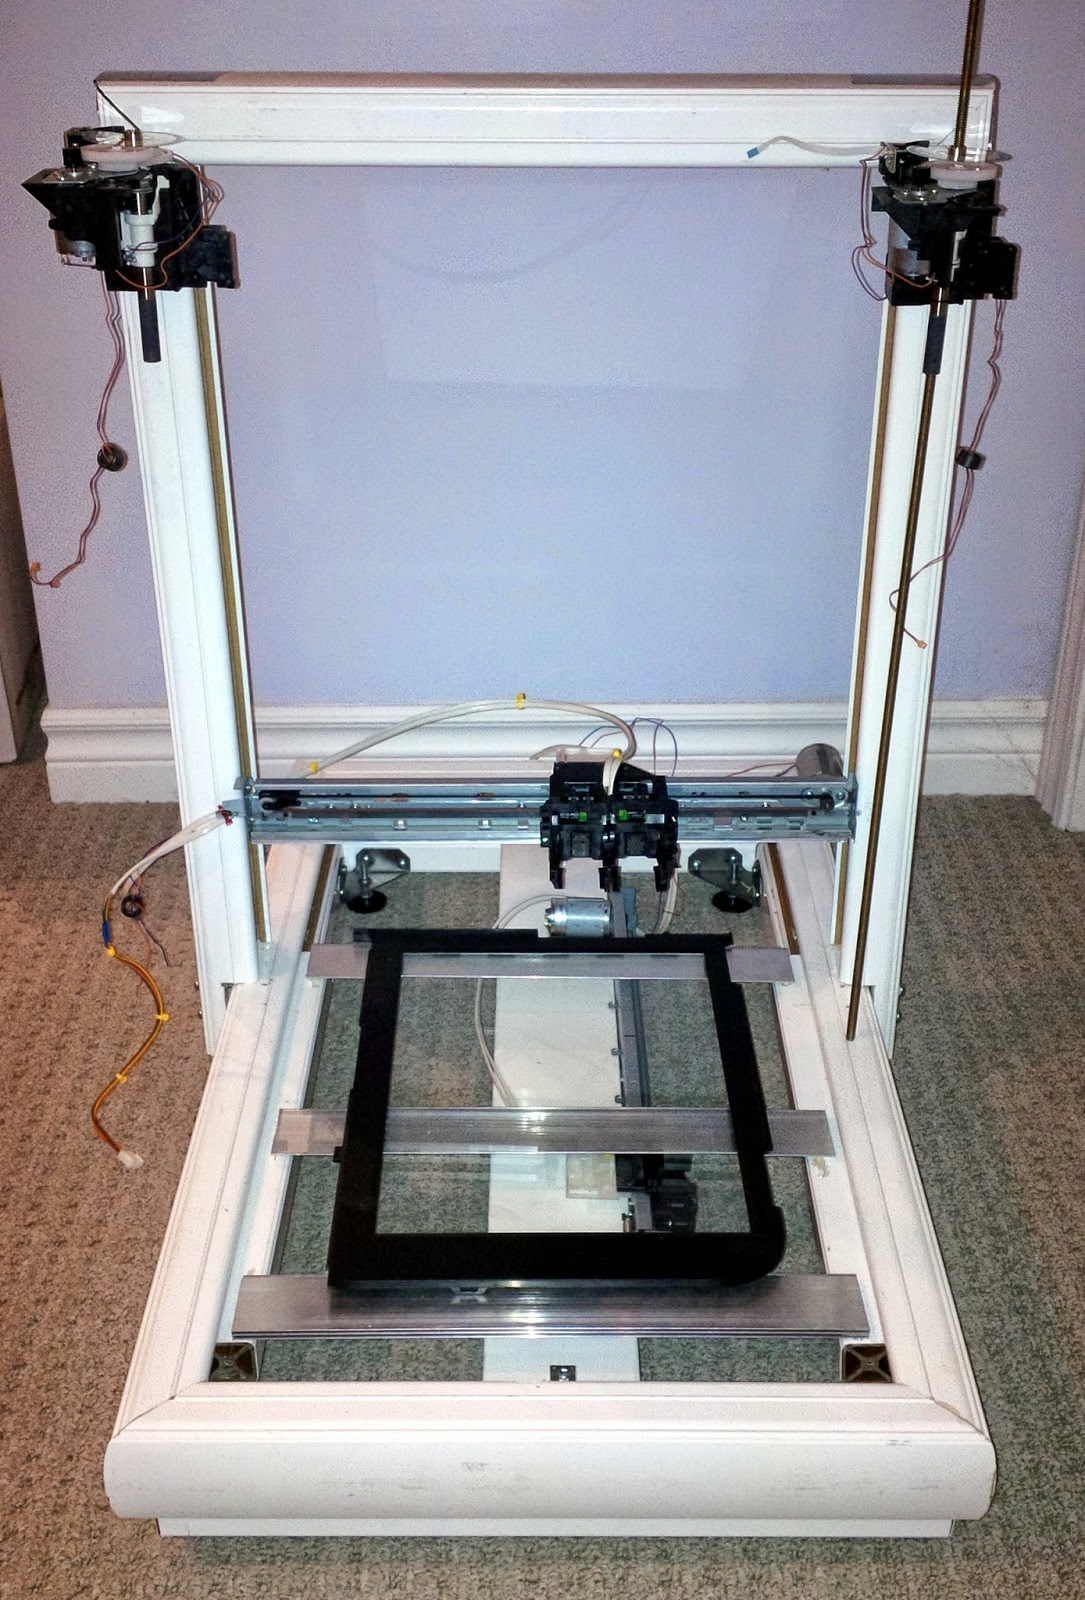 Diy d printing repscrap printer from salvaged